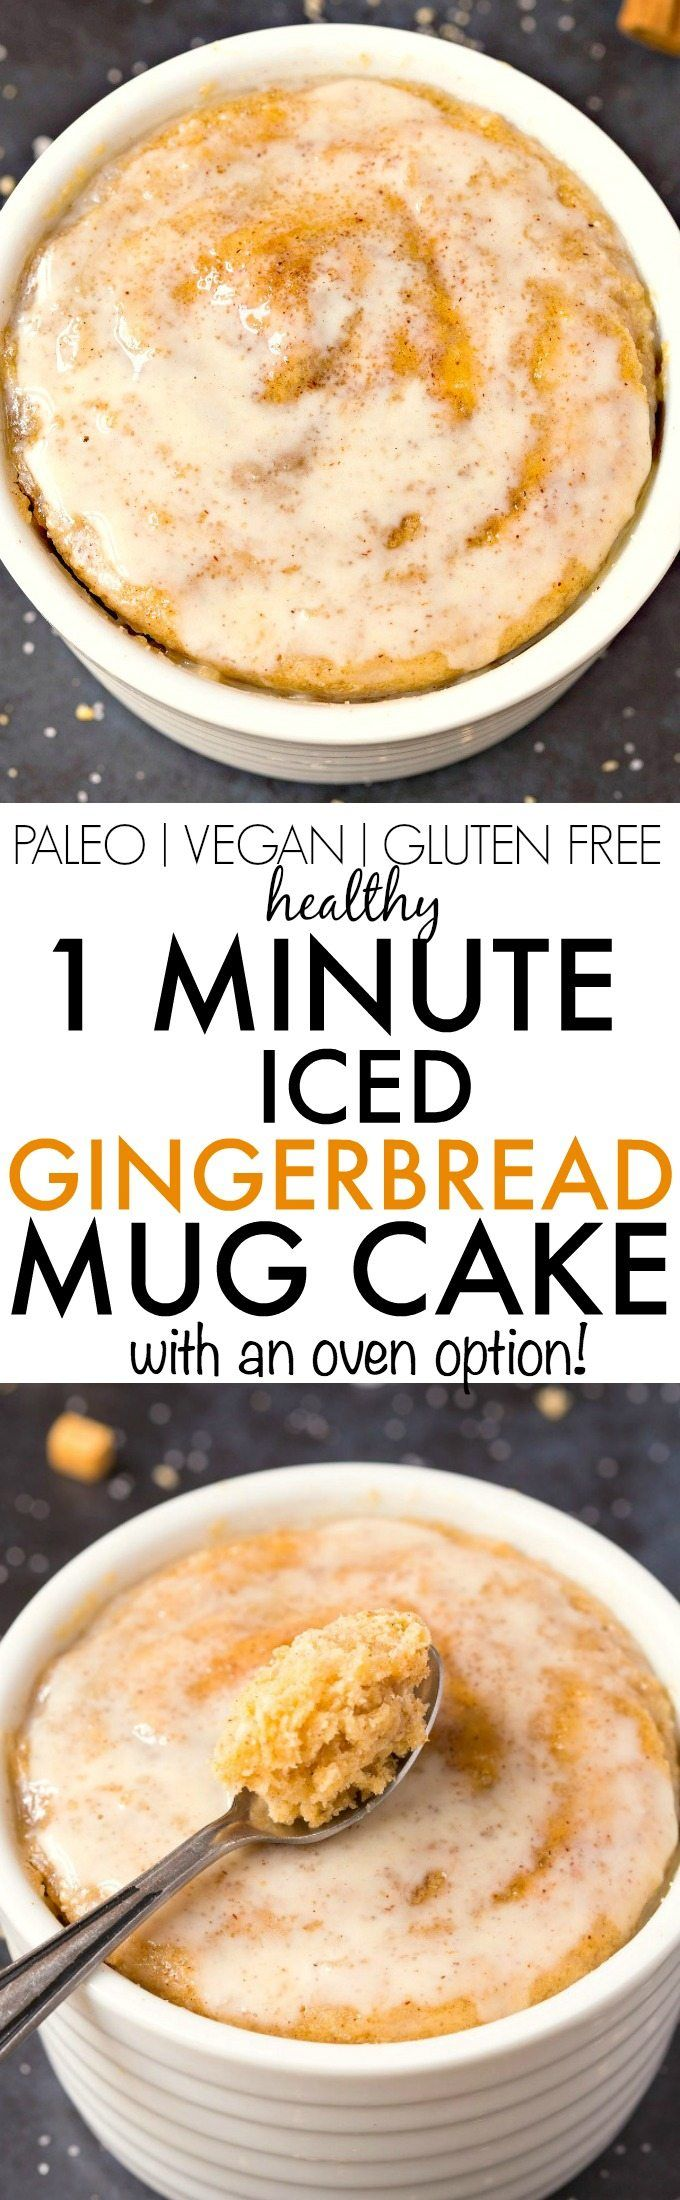 Healthy ONE MINUTE Iced Gingerbread Mug Cake- Quick, Easy, Delicious and with an oven option too, (perfect for Christmas and holidays!) it's light, fluffy and tender- Made with NO butter, it's oil free, sugar free and low calorie! {vegan, gluten free, paleo recipe}- thebigmansworld.com